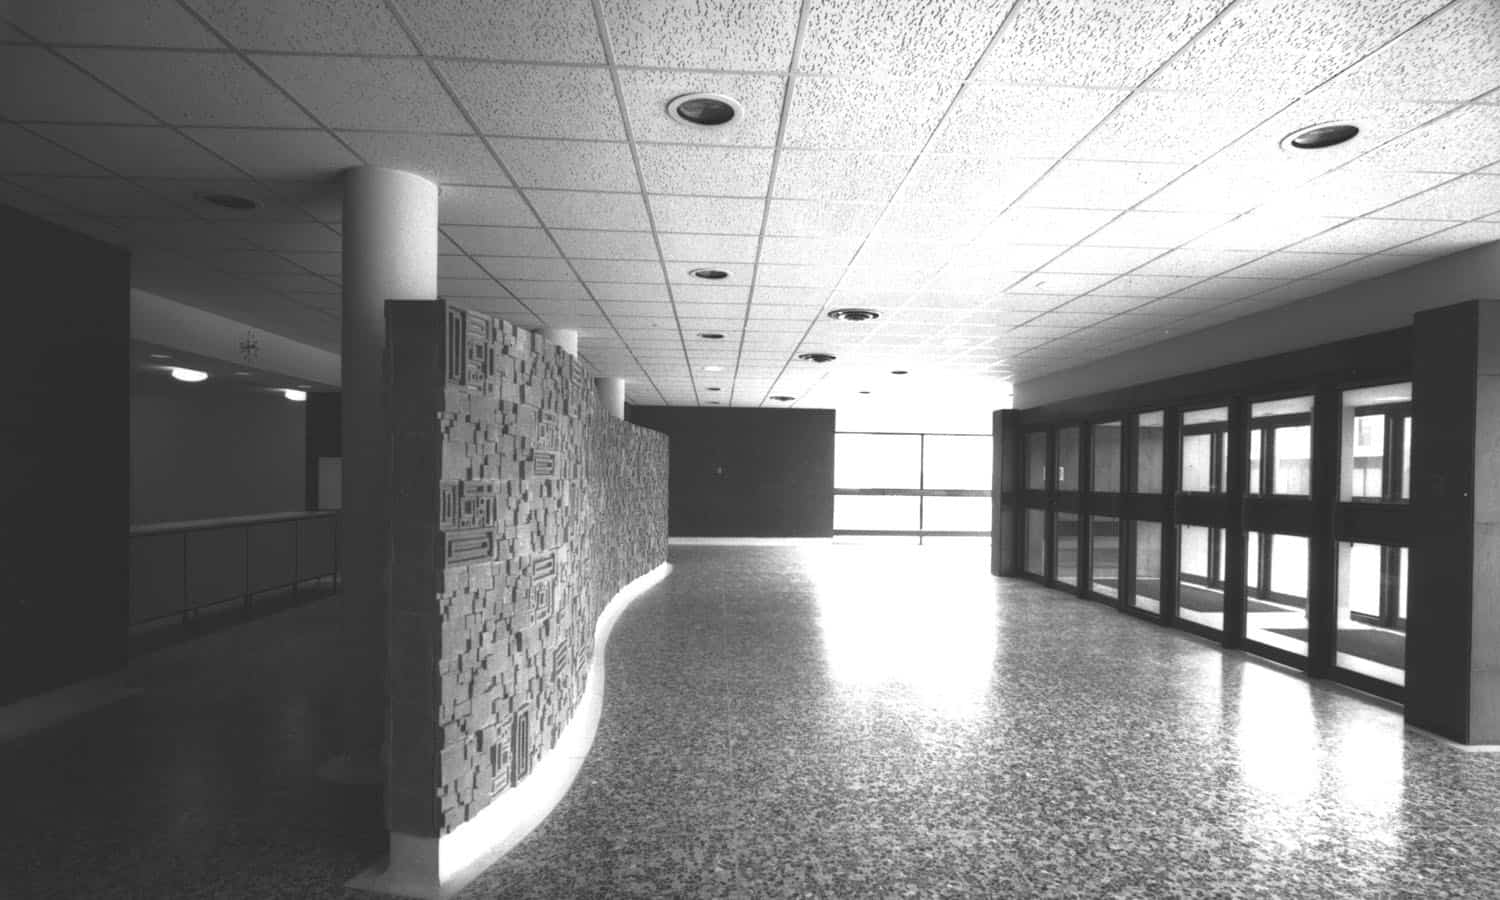 The auditorium foyer with its decorative screen at the cloakroom (Library & Archives Canada PA-192721)